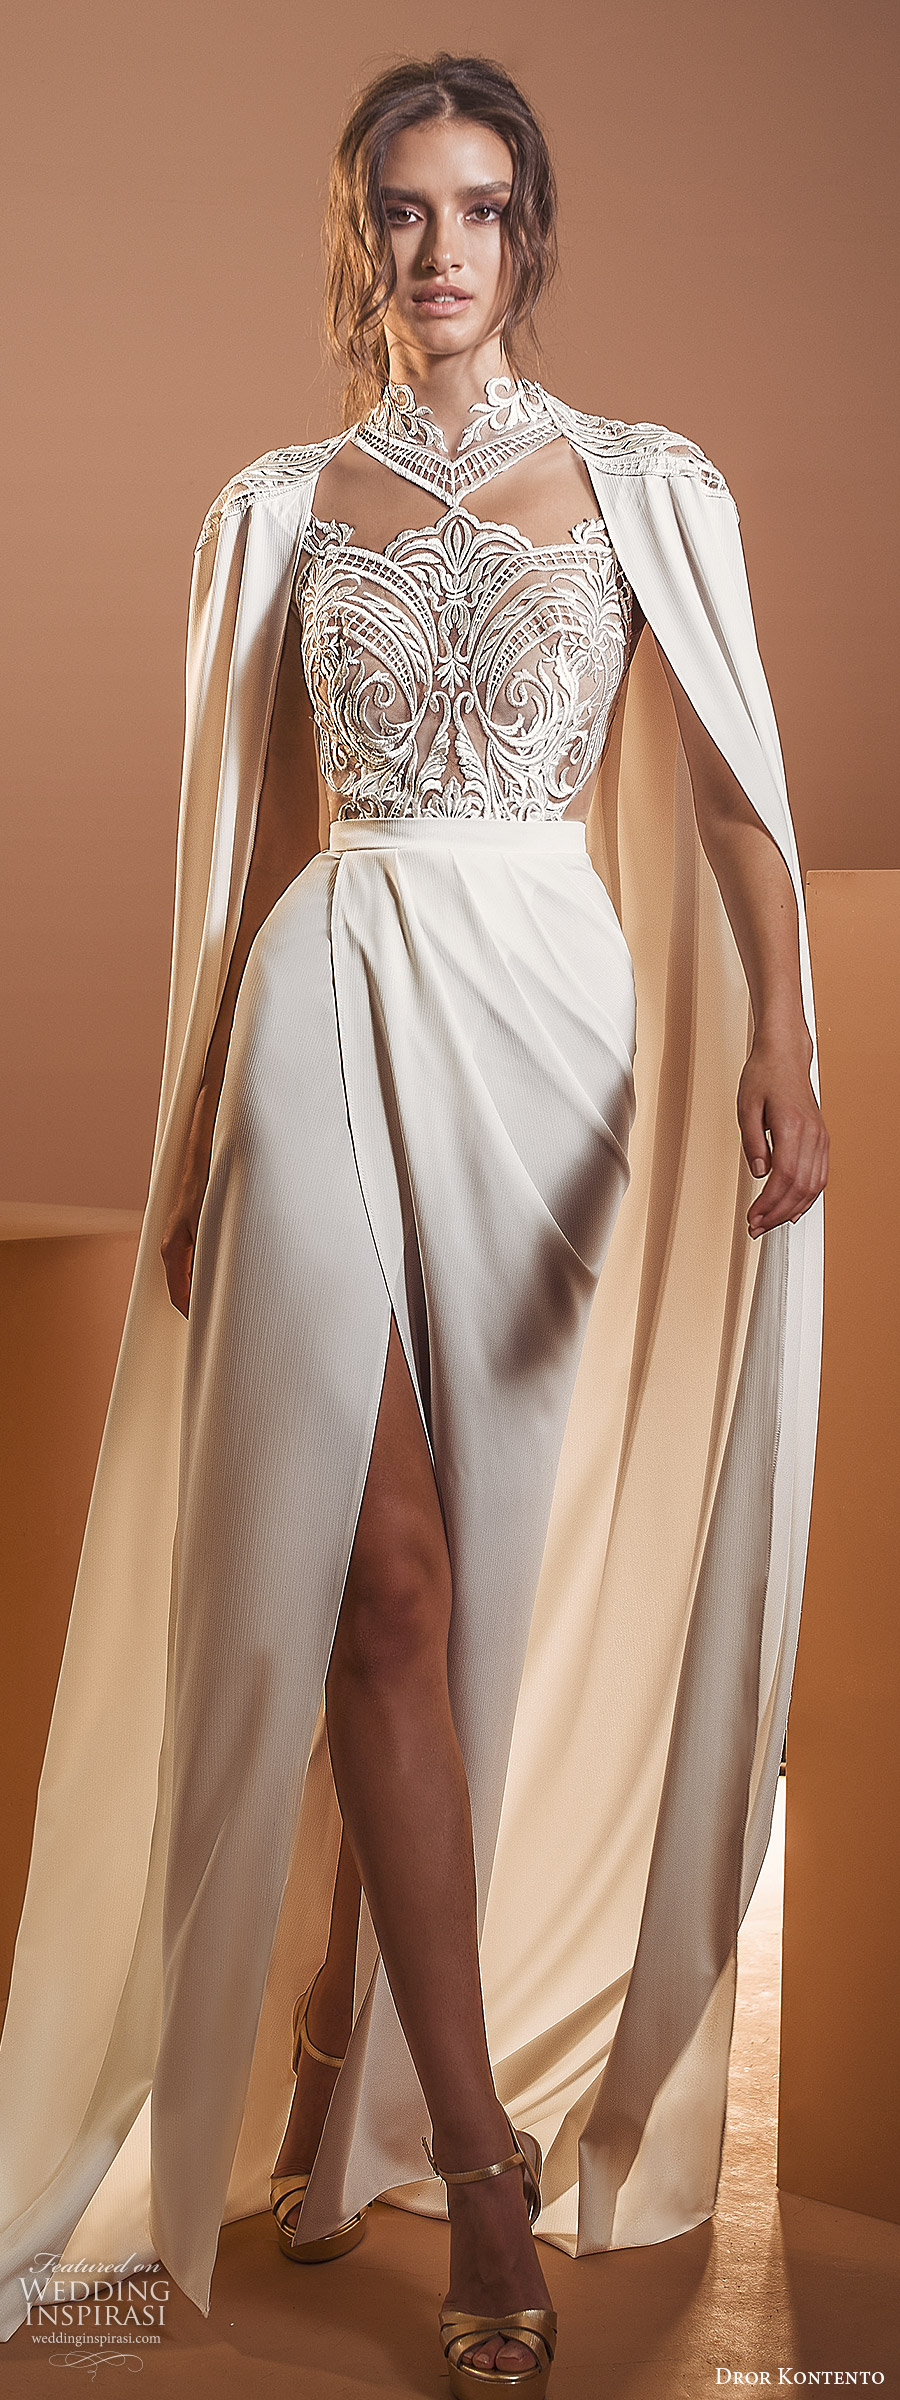 dror kontento 2020 bridal long cape sleeves high neckline embellished lace sheer bodice column sheath wedding dress with cape slit skirt chapel train (6) lv